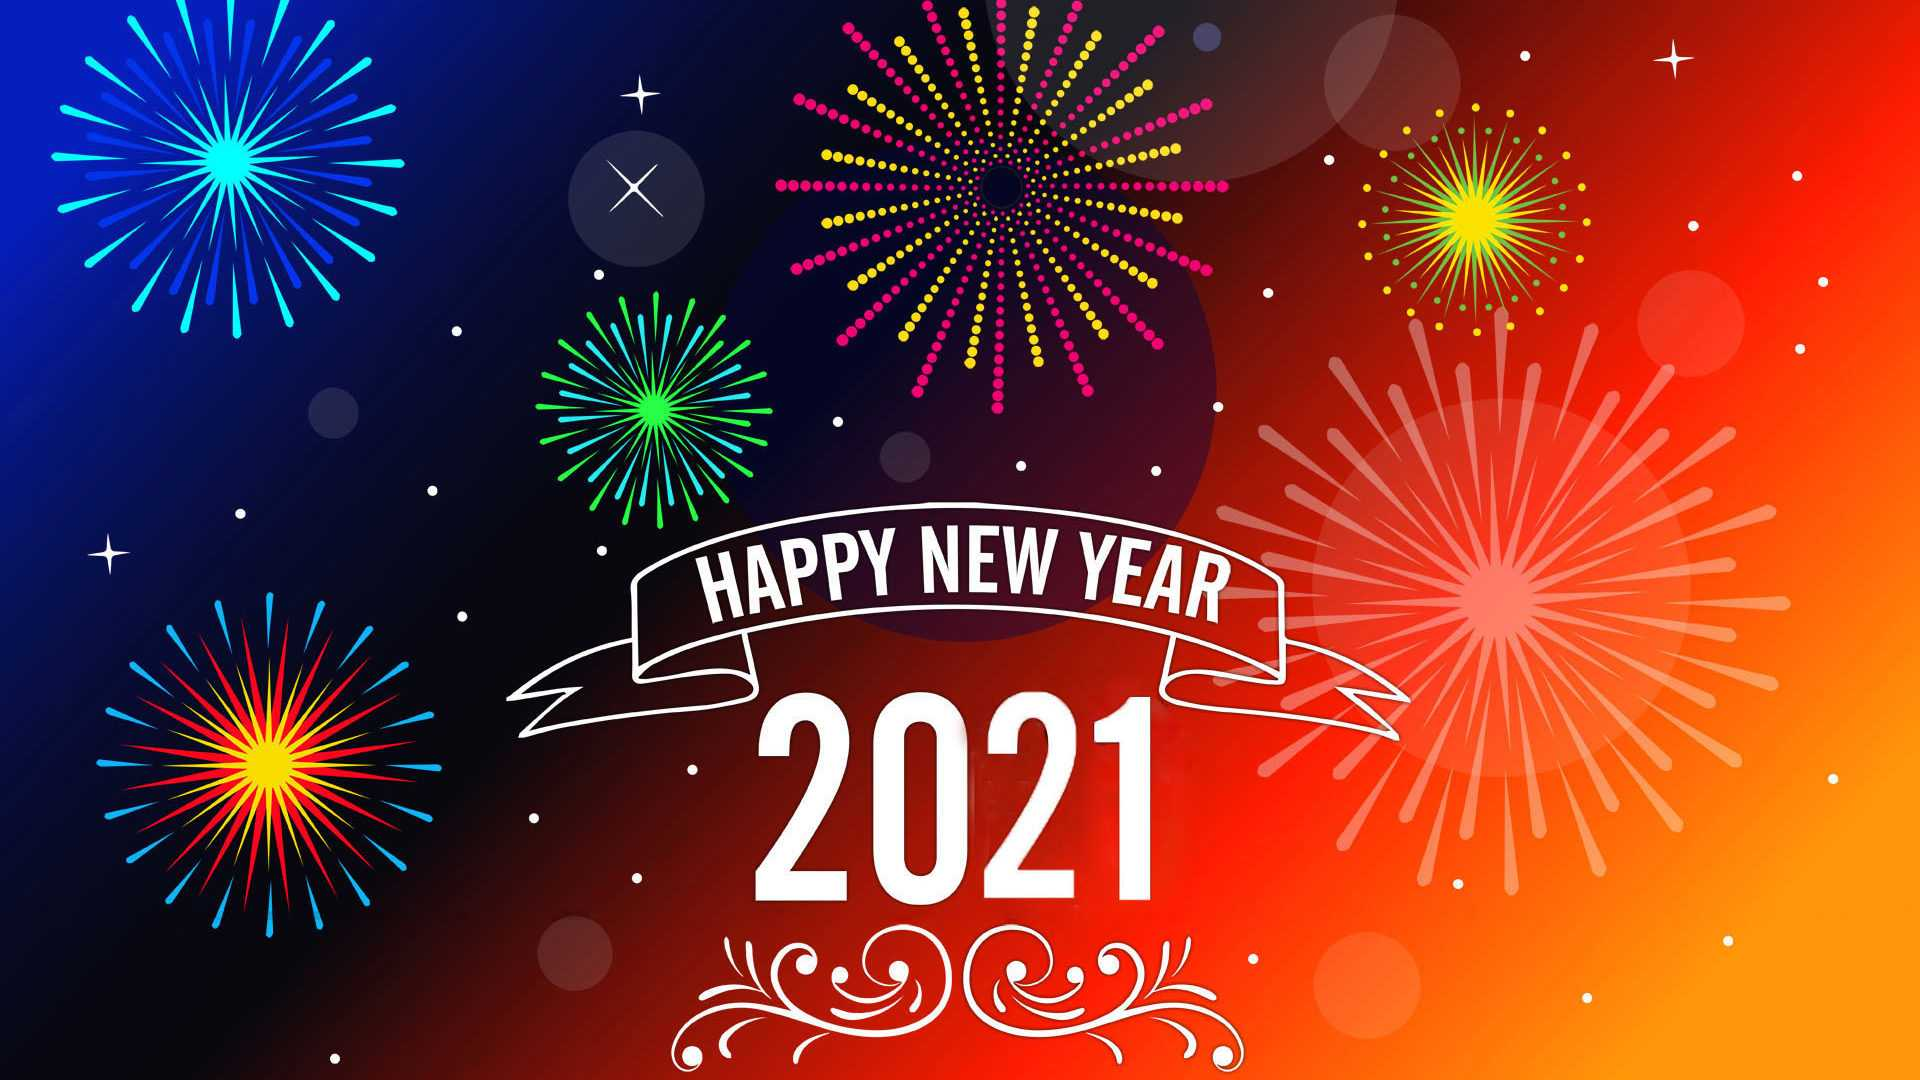 Happy New Year 2021 Wallpapers - KoLPaPer - Awesome Free ...